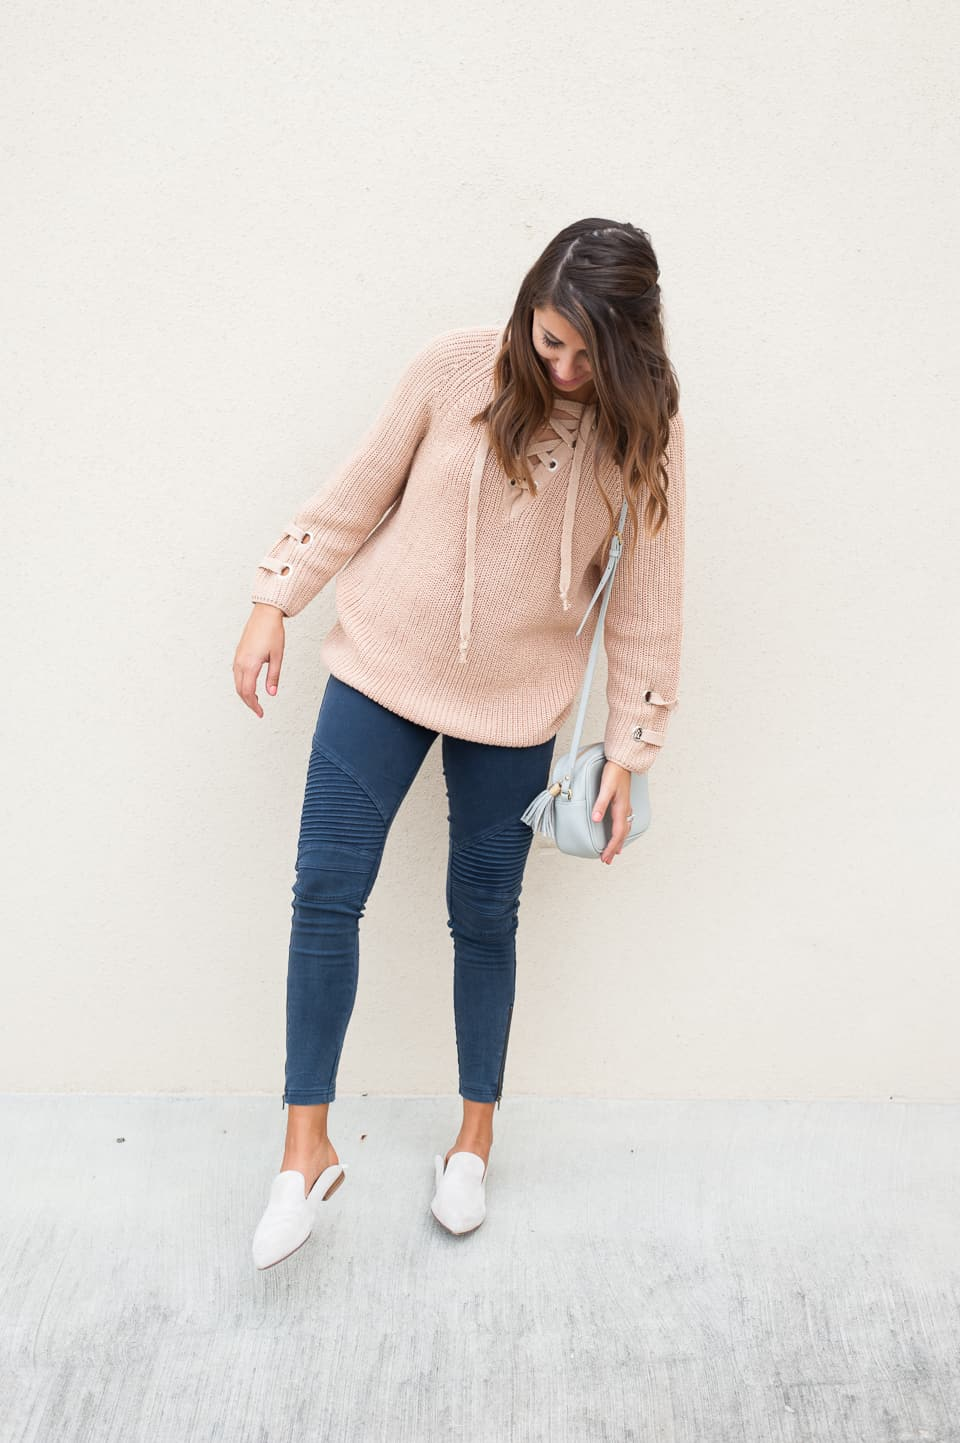 Dress Up Buttercup // A Houston-based fashion and inspiration blog developed to daily inspire your own personal style by Dede Raad | Lace Up Mood